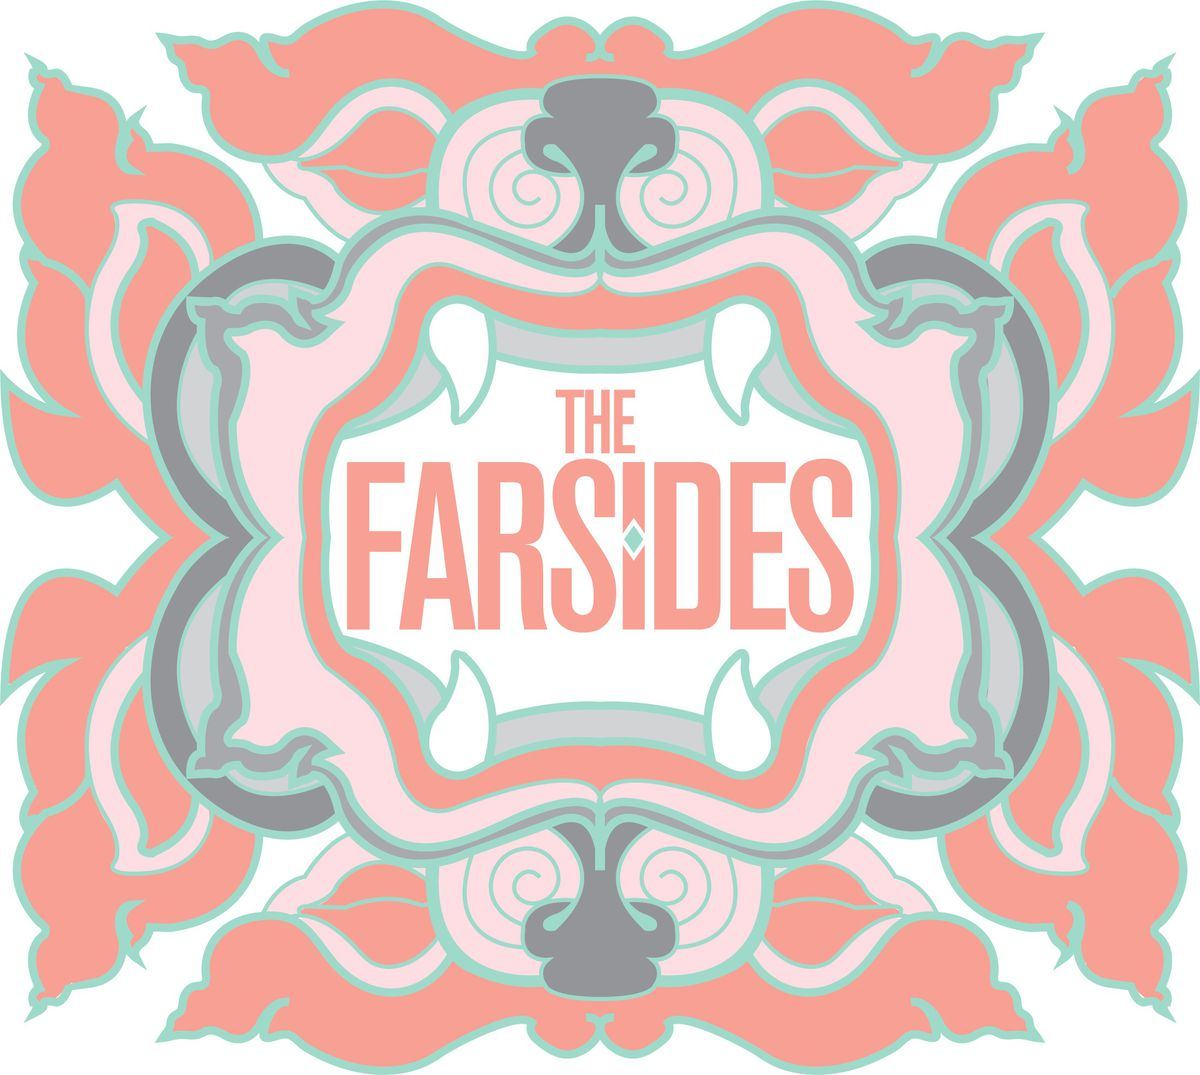 A floral logo for the Farsides rendered in pink and blue.